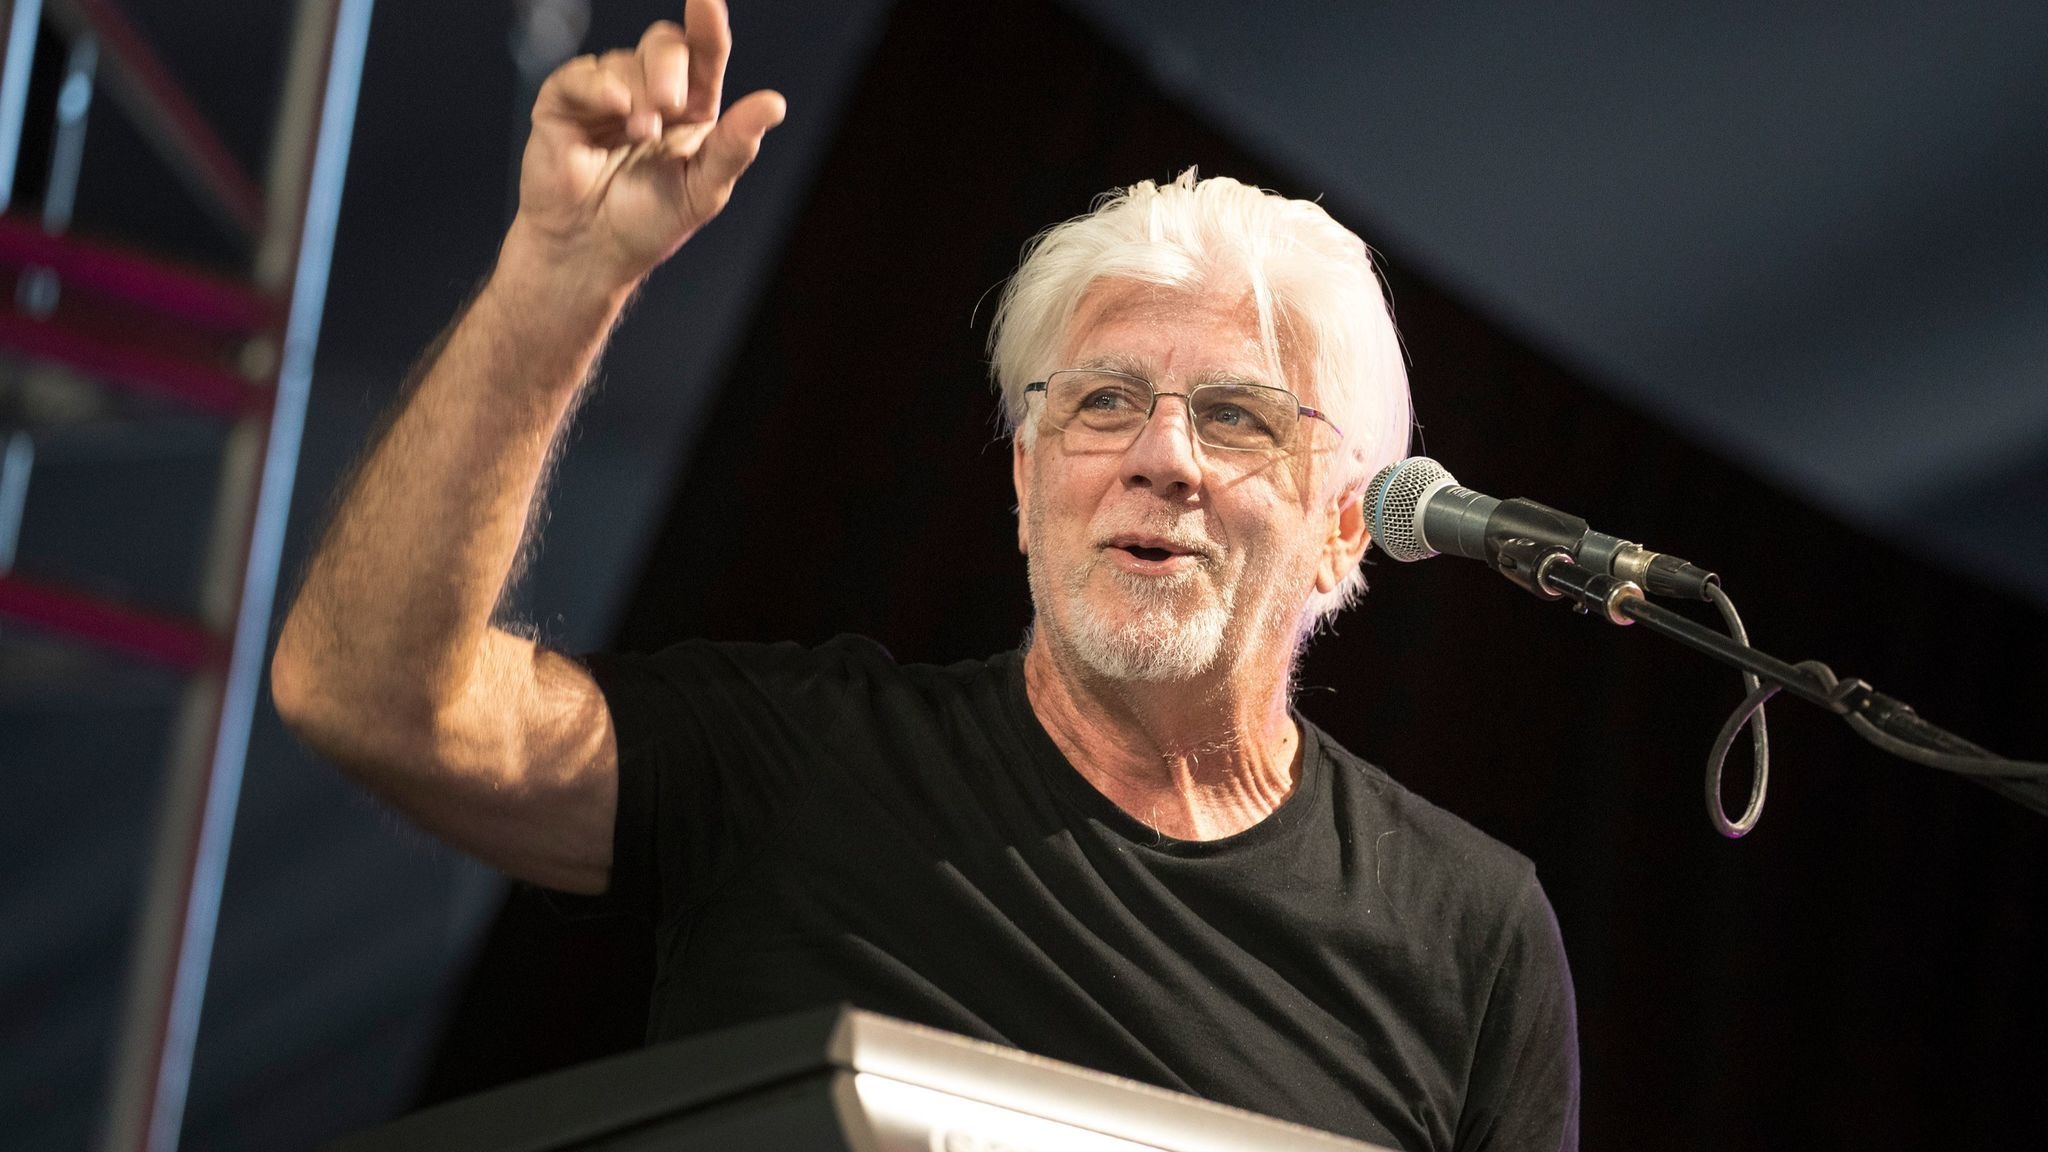 Michael McDonald at Coachella.